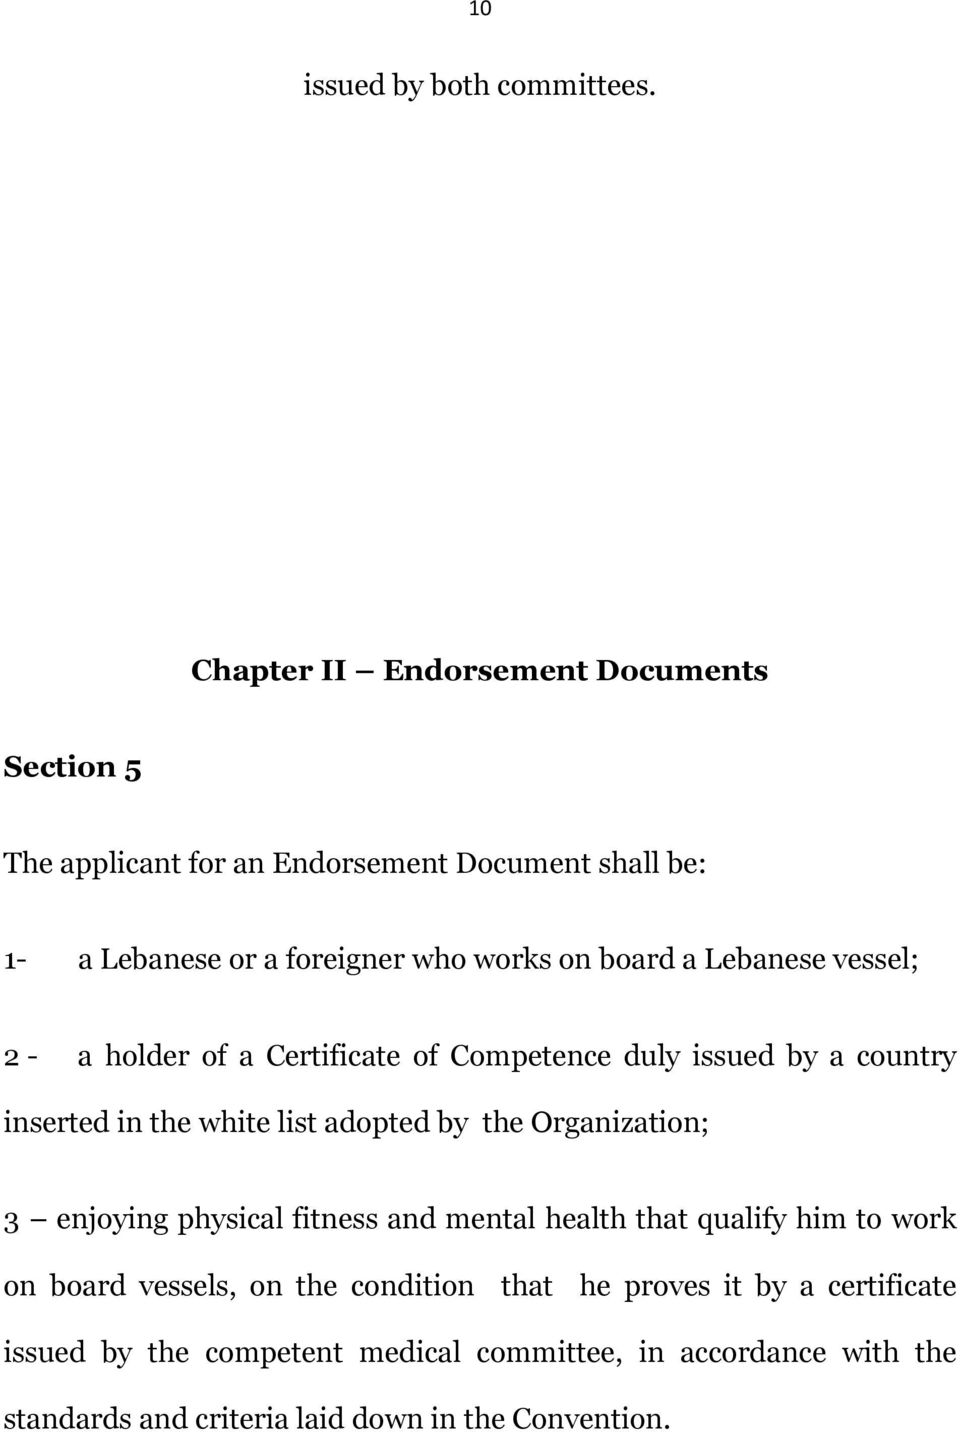 a Lebanese vessel; 2 - a holder of a Certificate of Competence duly issued by a country inserted in the white list adopted by the Organization;